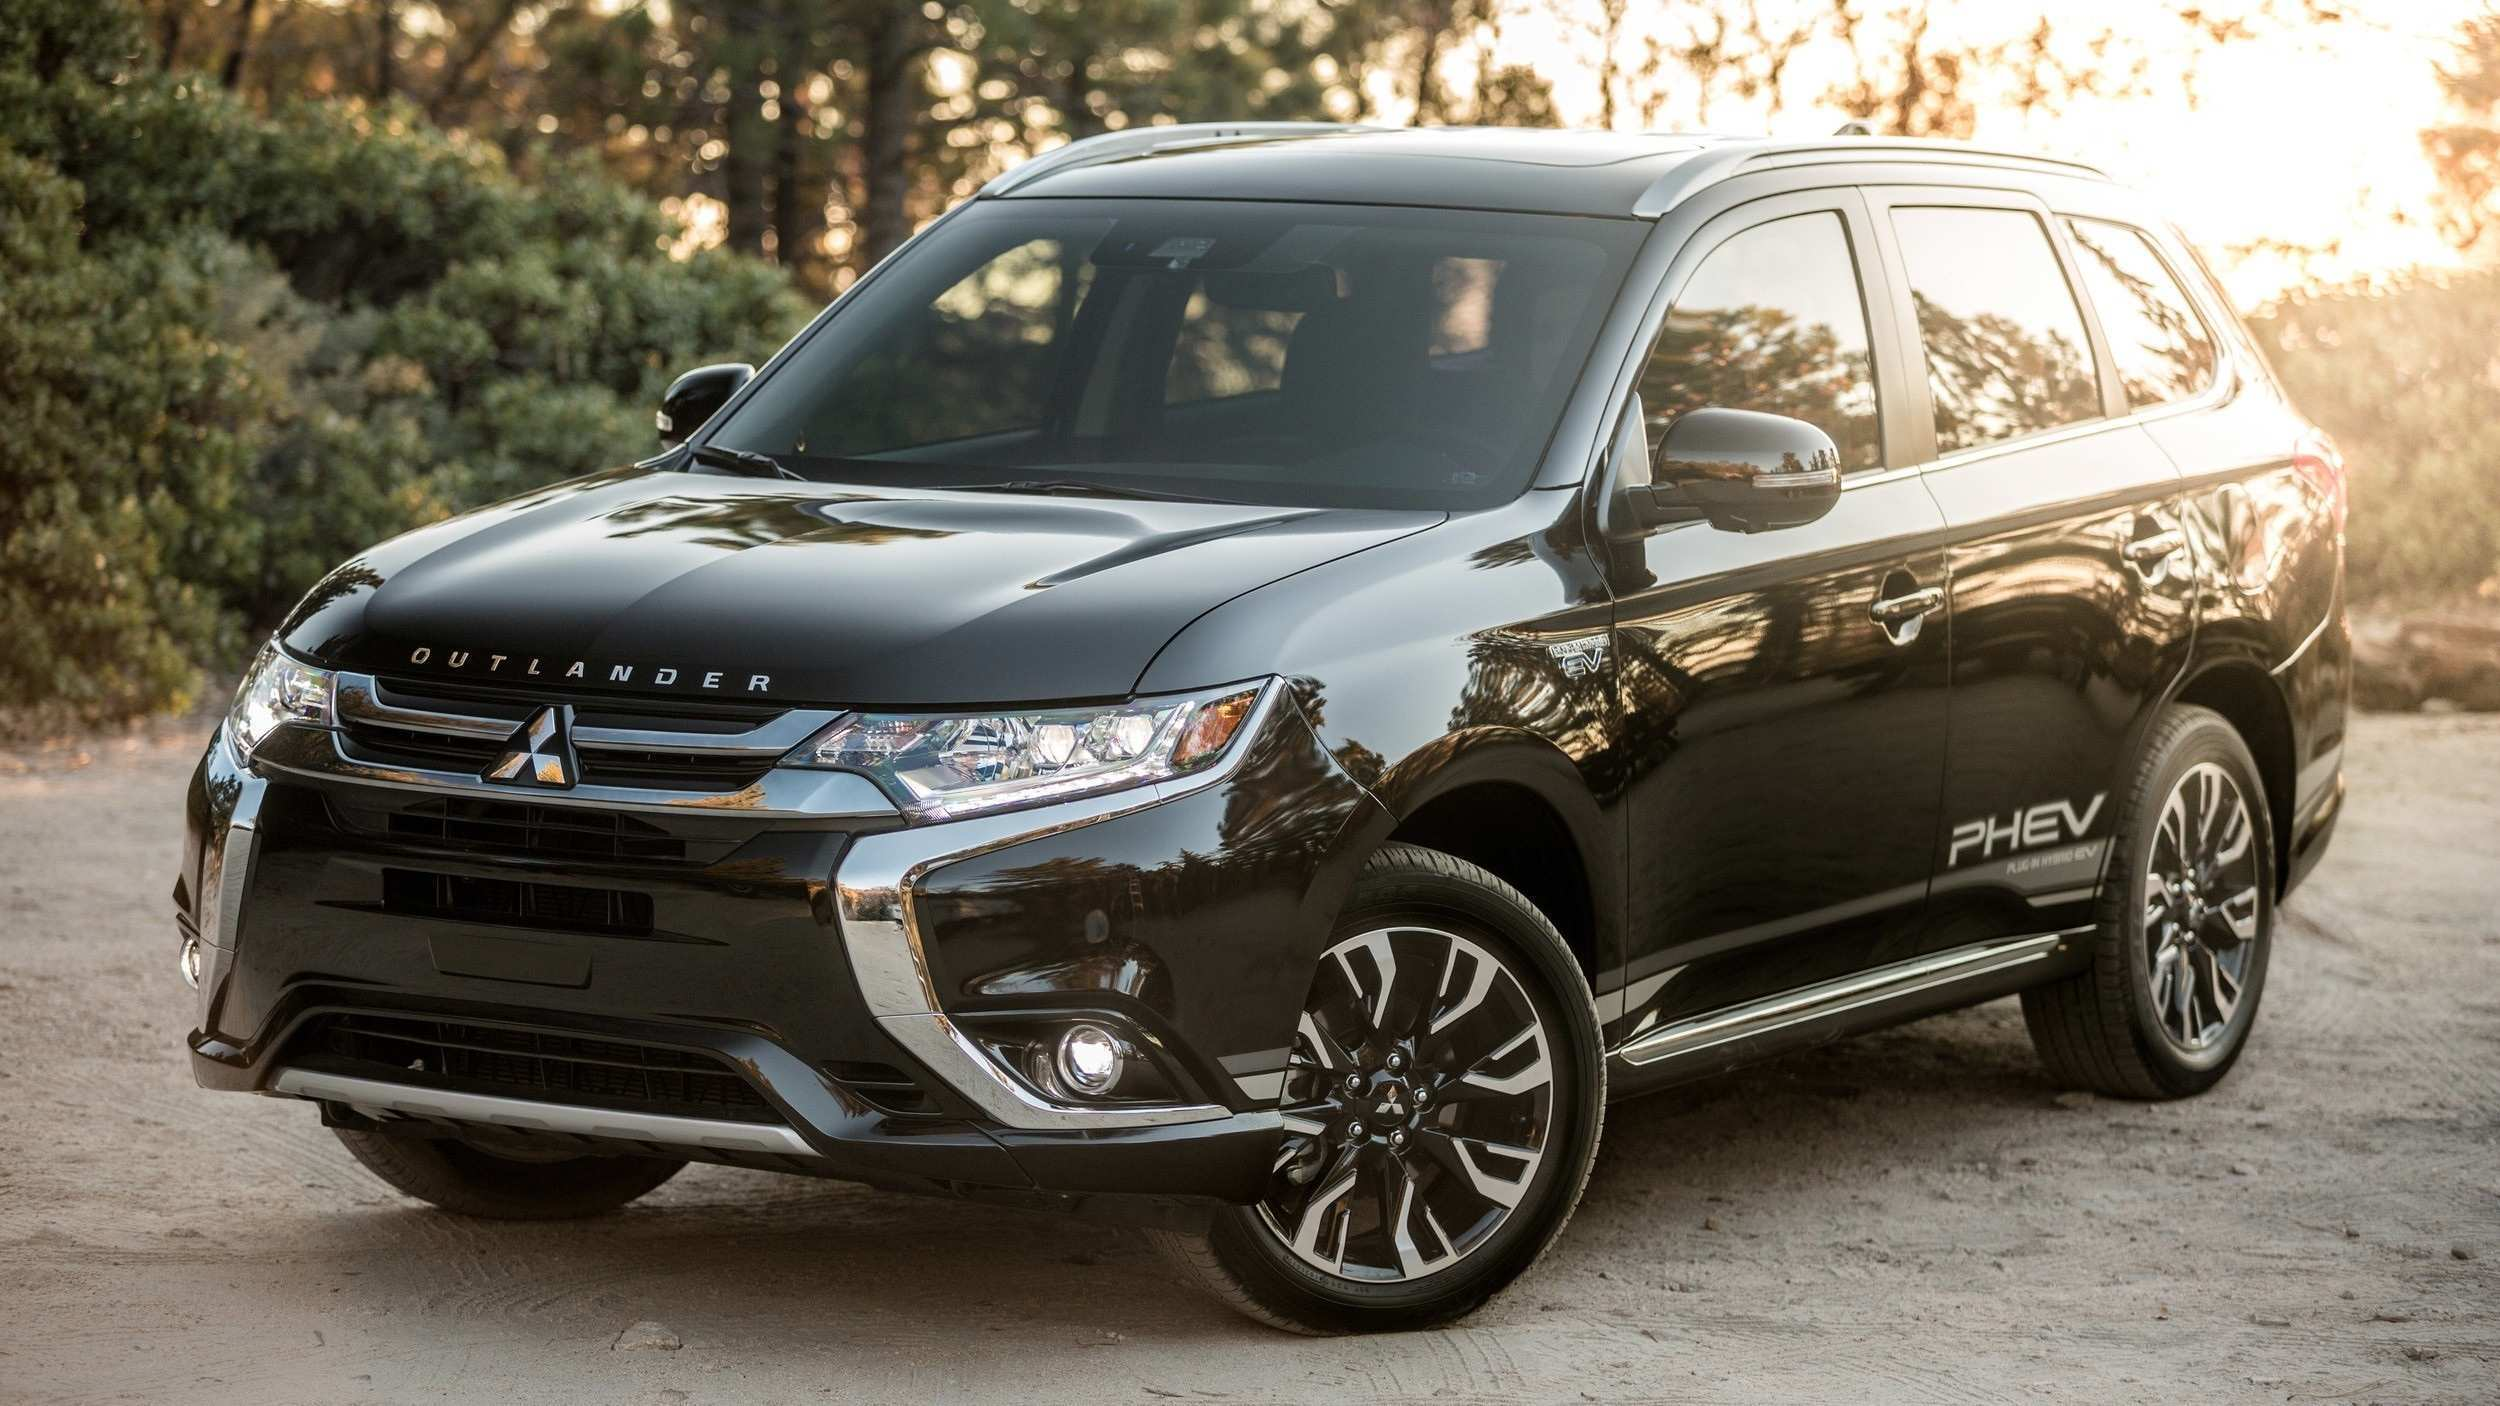 68 The Best 2020 Mitsubishi Outlander Performance And New Engine